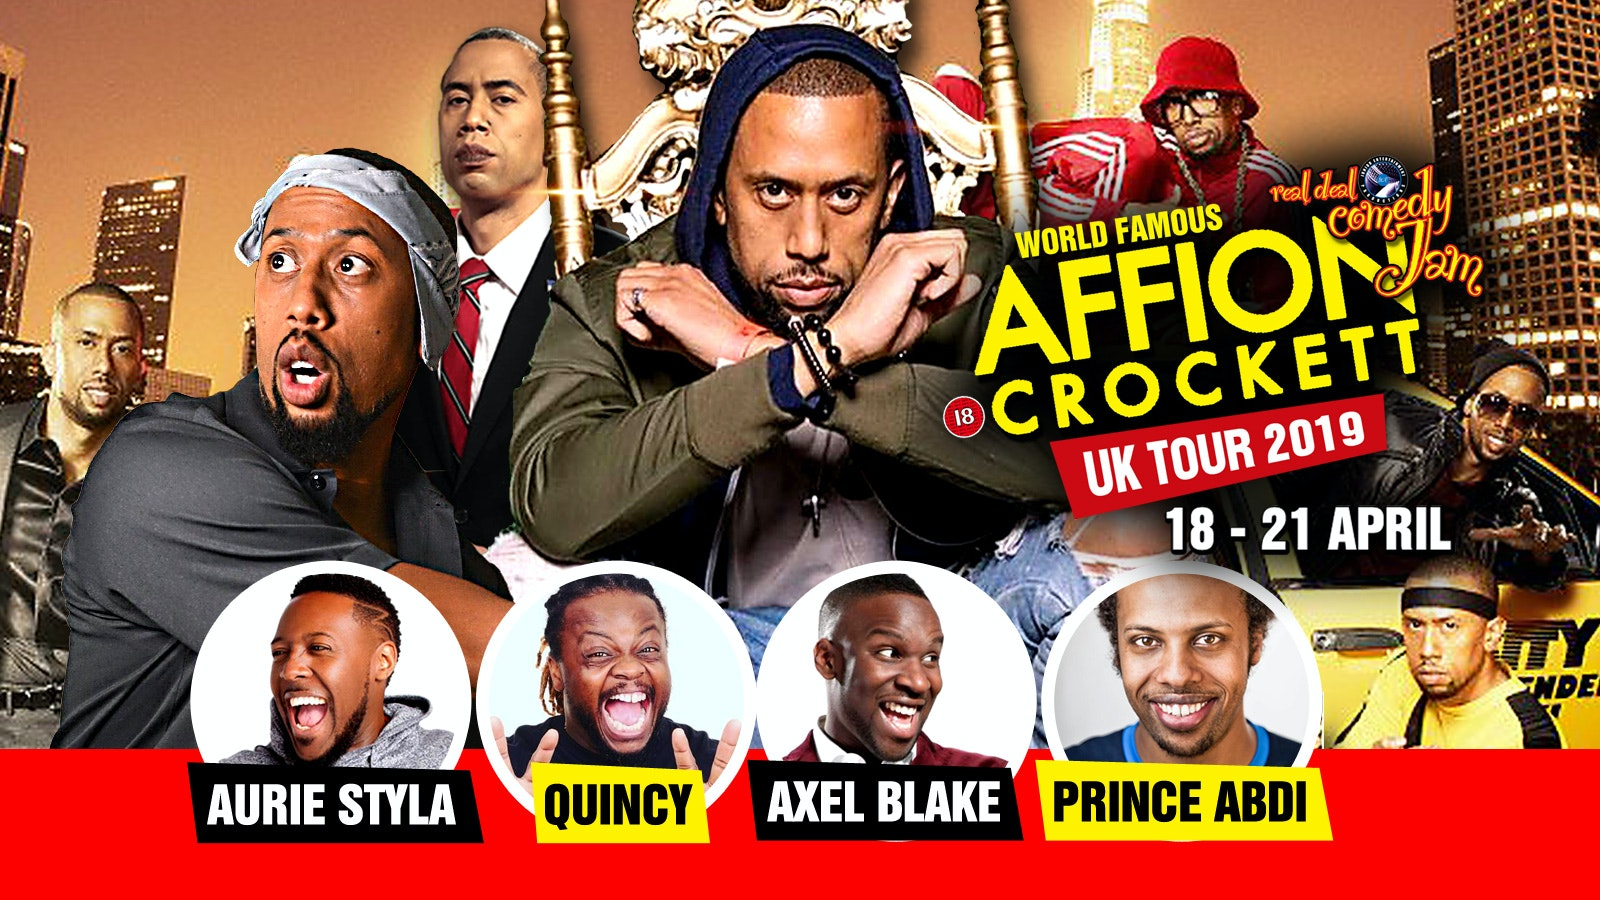 London – Real Deal Comedy Jam Easter starring Affion Crockett